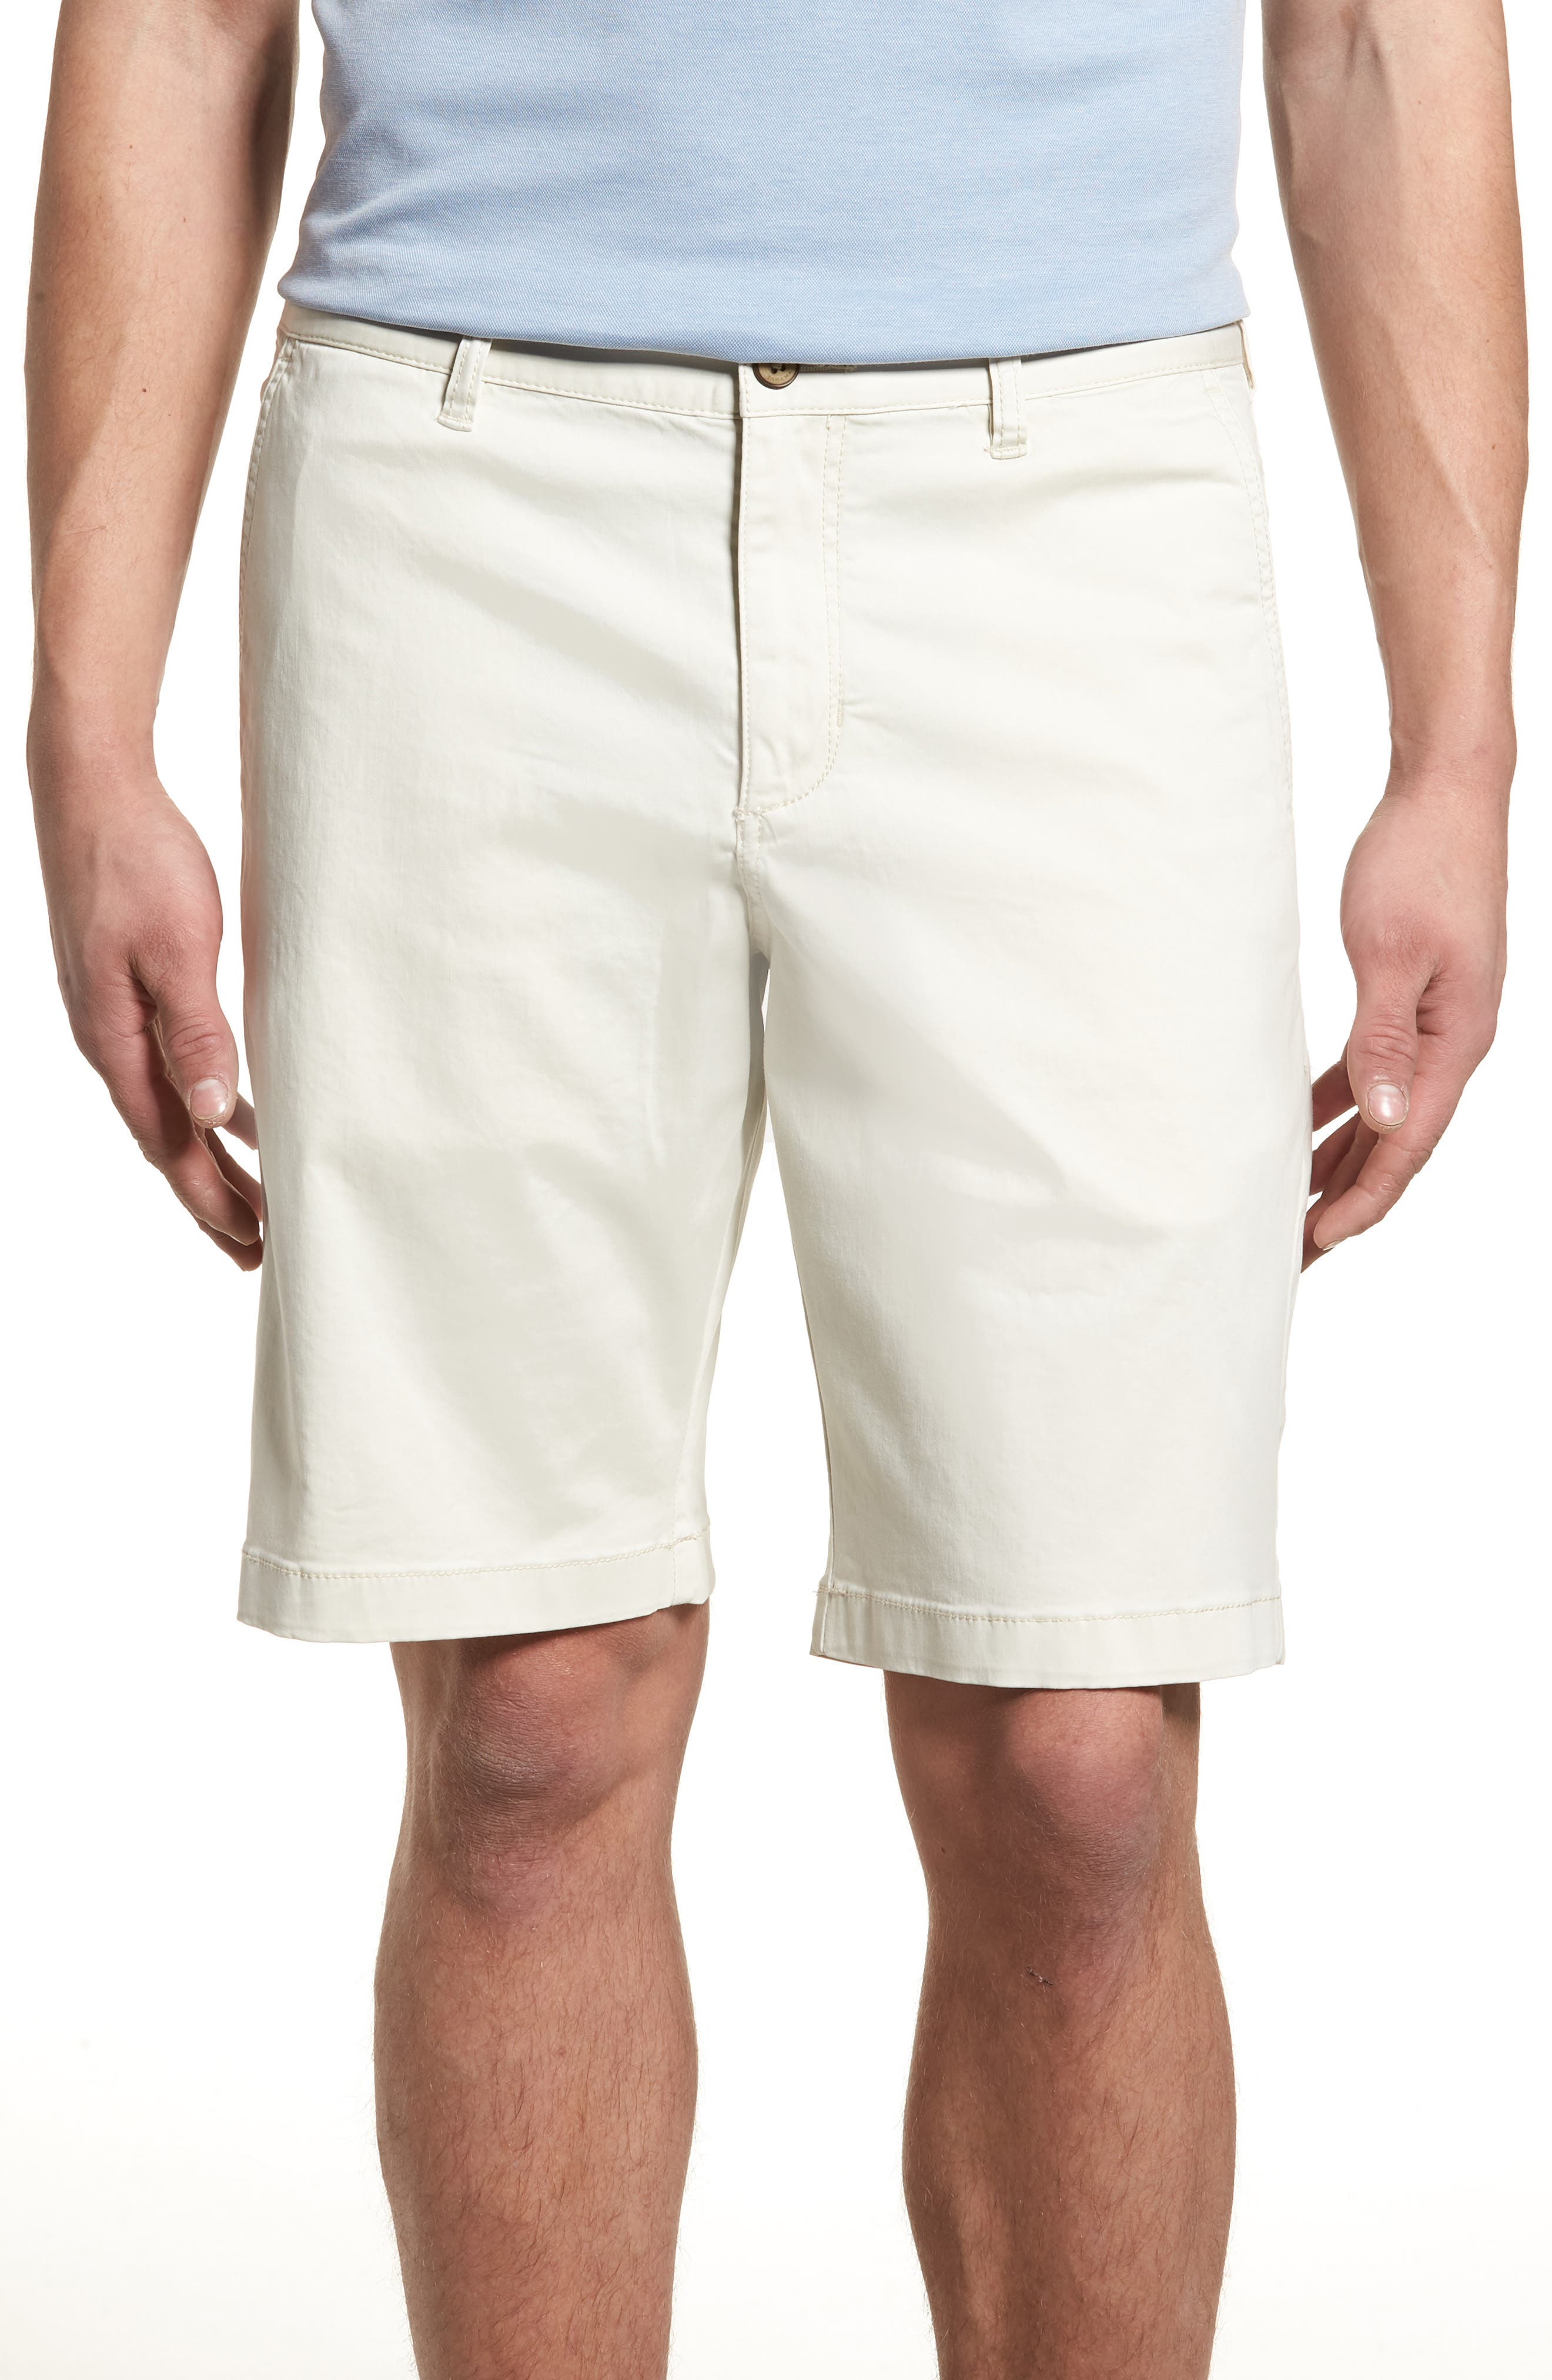 Boracay Chino Shorts,                         Main,                         color, Bleached Sand